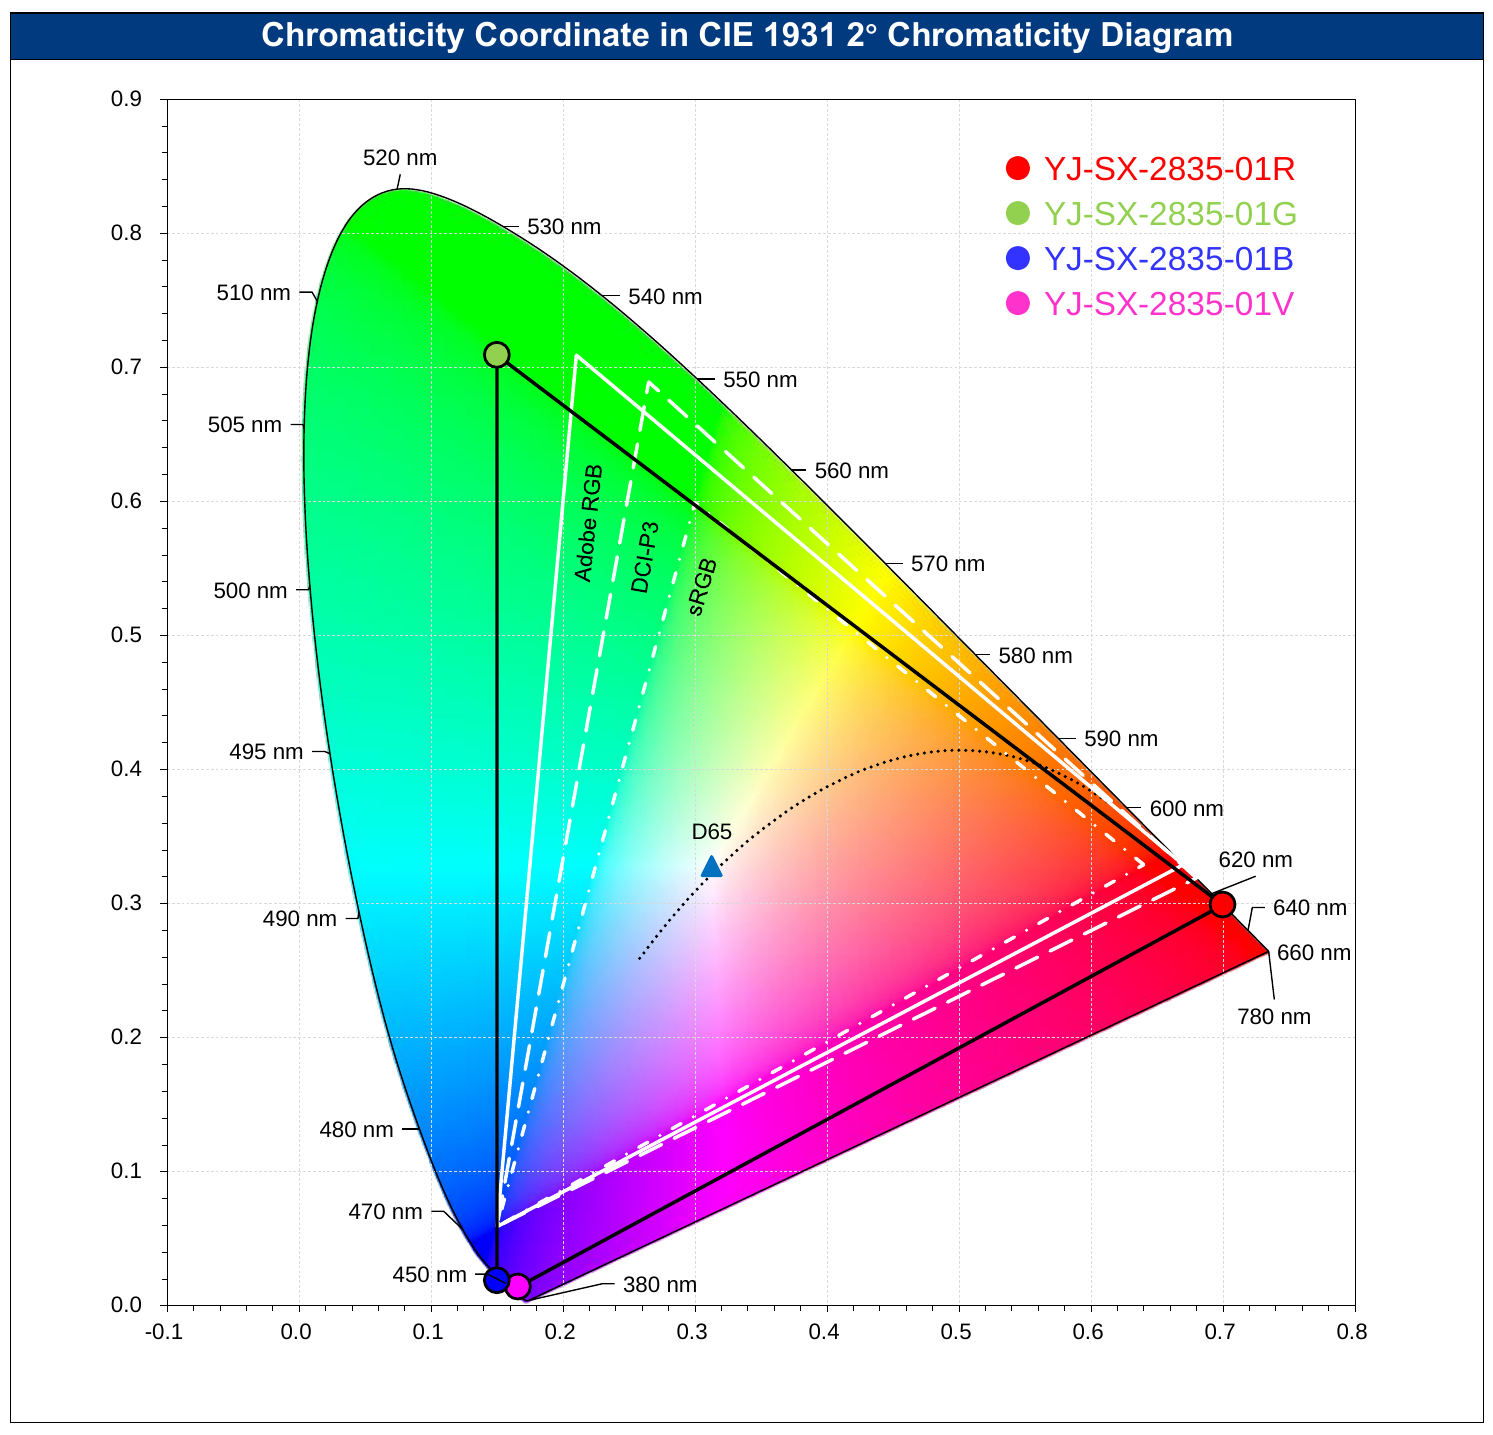 Coordinates of SpectrumX LEDs in CIE 1931 Chromaticity Diagram